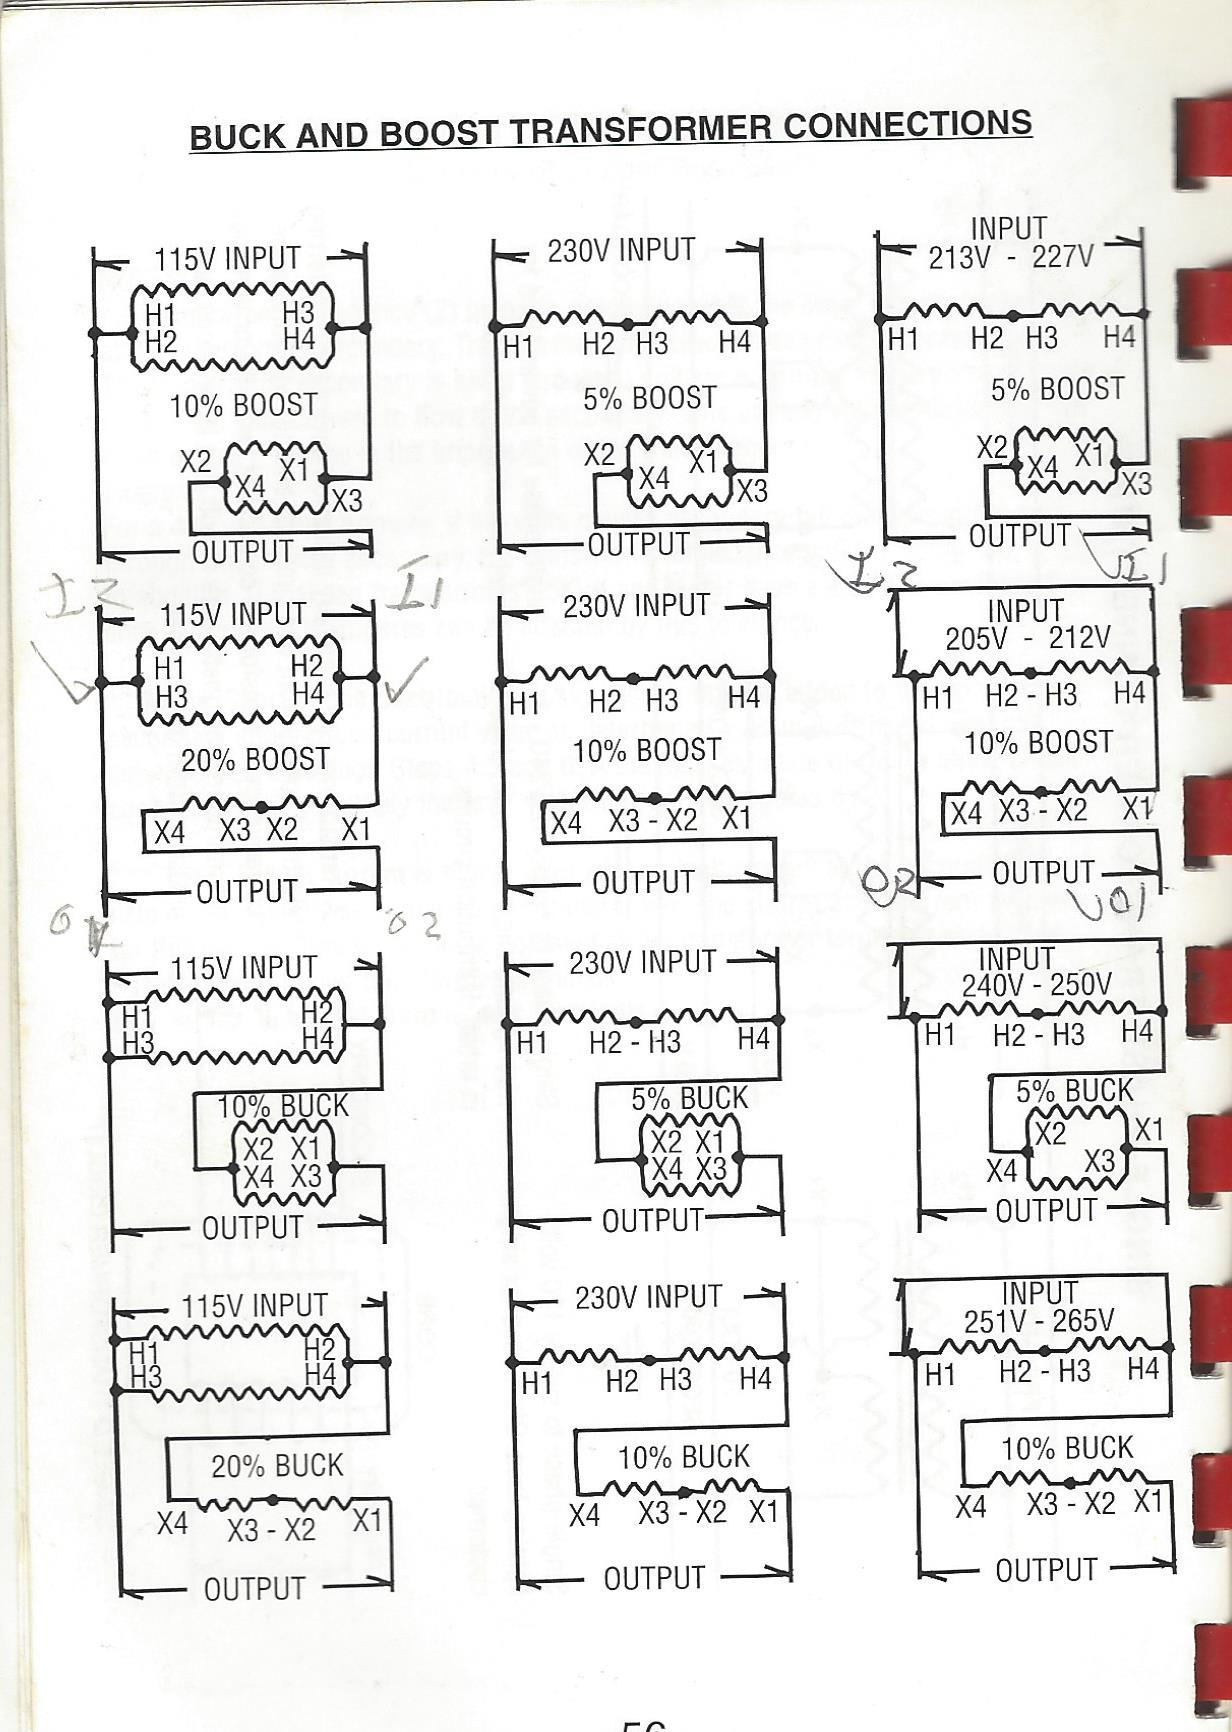 208v To 240v Buck Boost Transformer Wiring Diagram : boost, transformer, wiring, diagram, 208x240, Boost, Transformer, Putting, ~260v, Improvement, Stack, Exchange